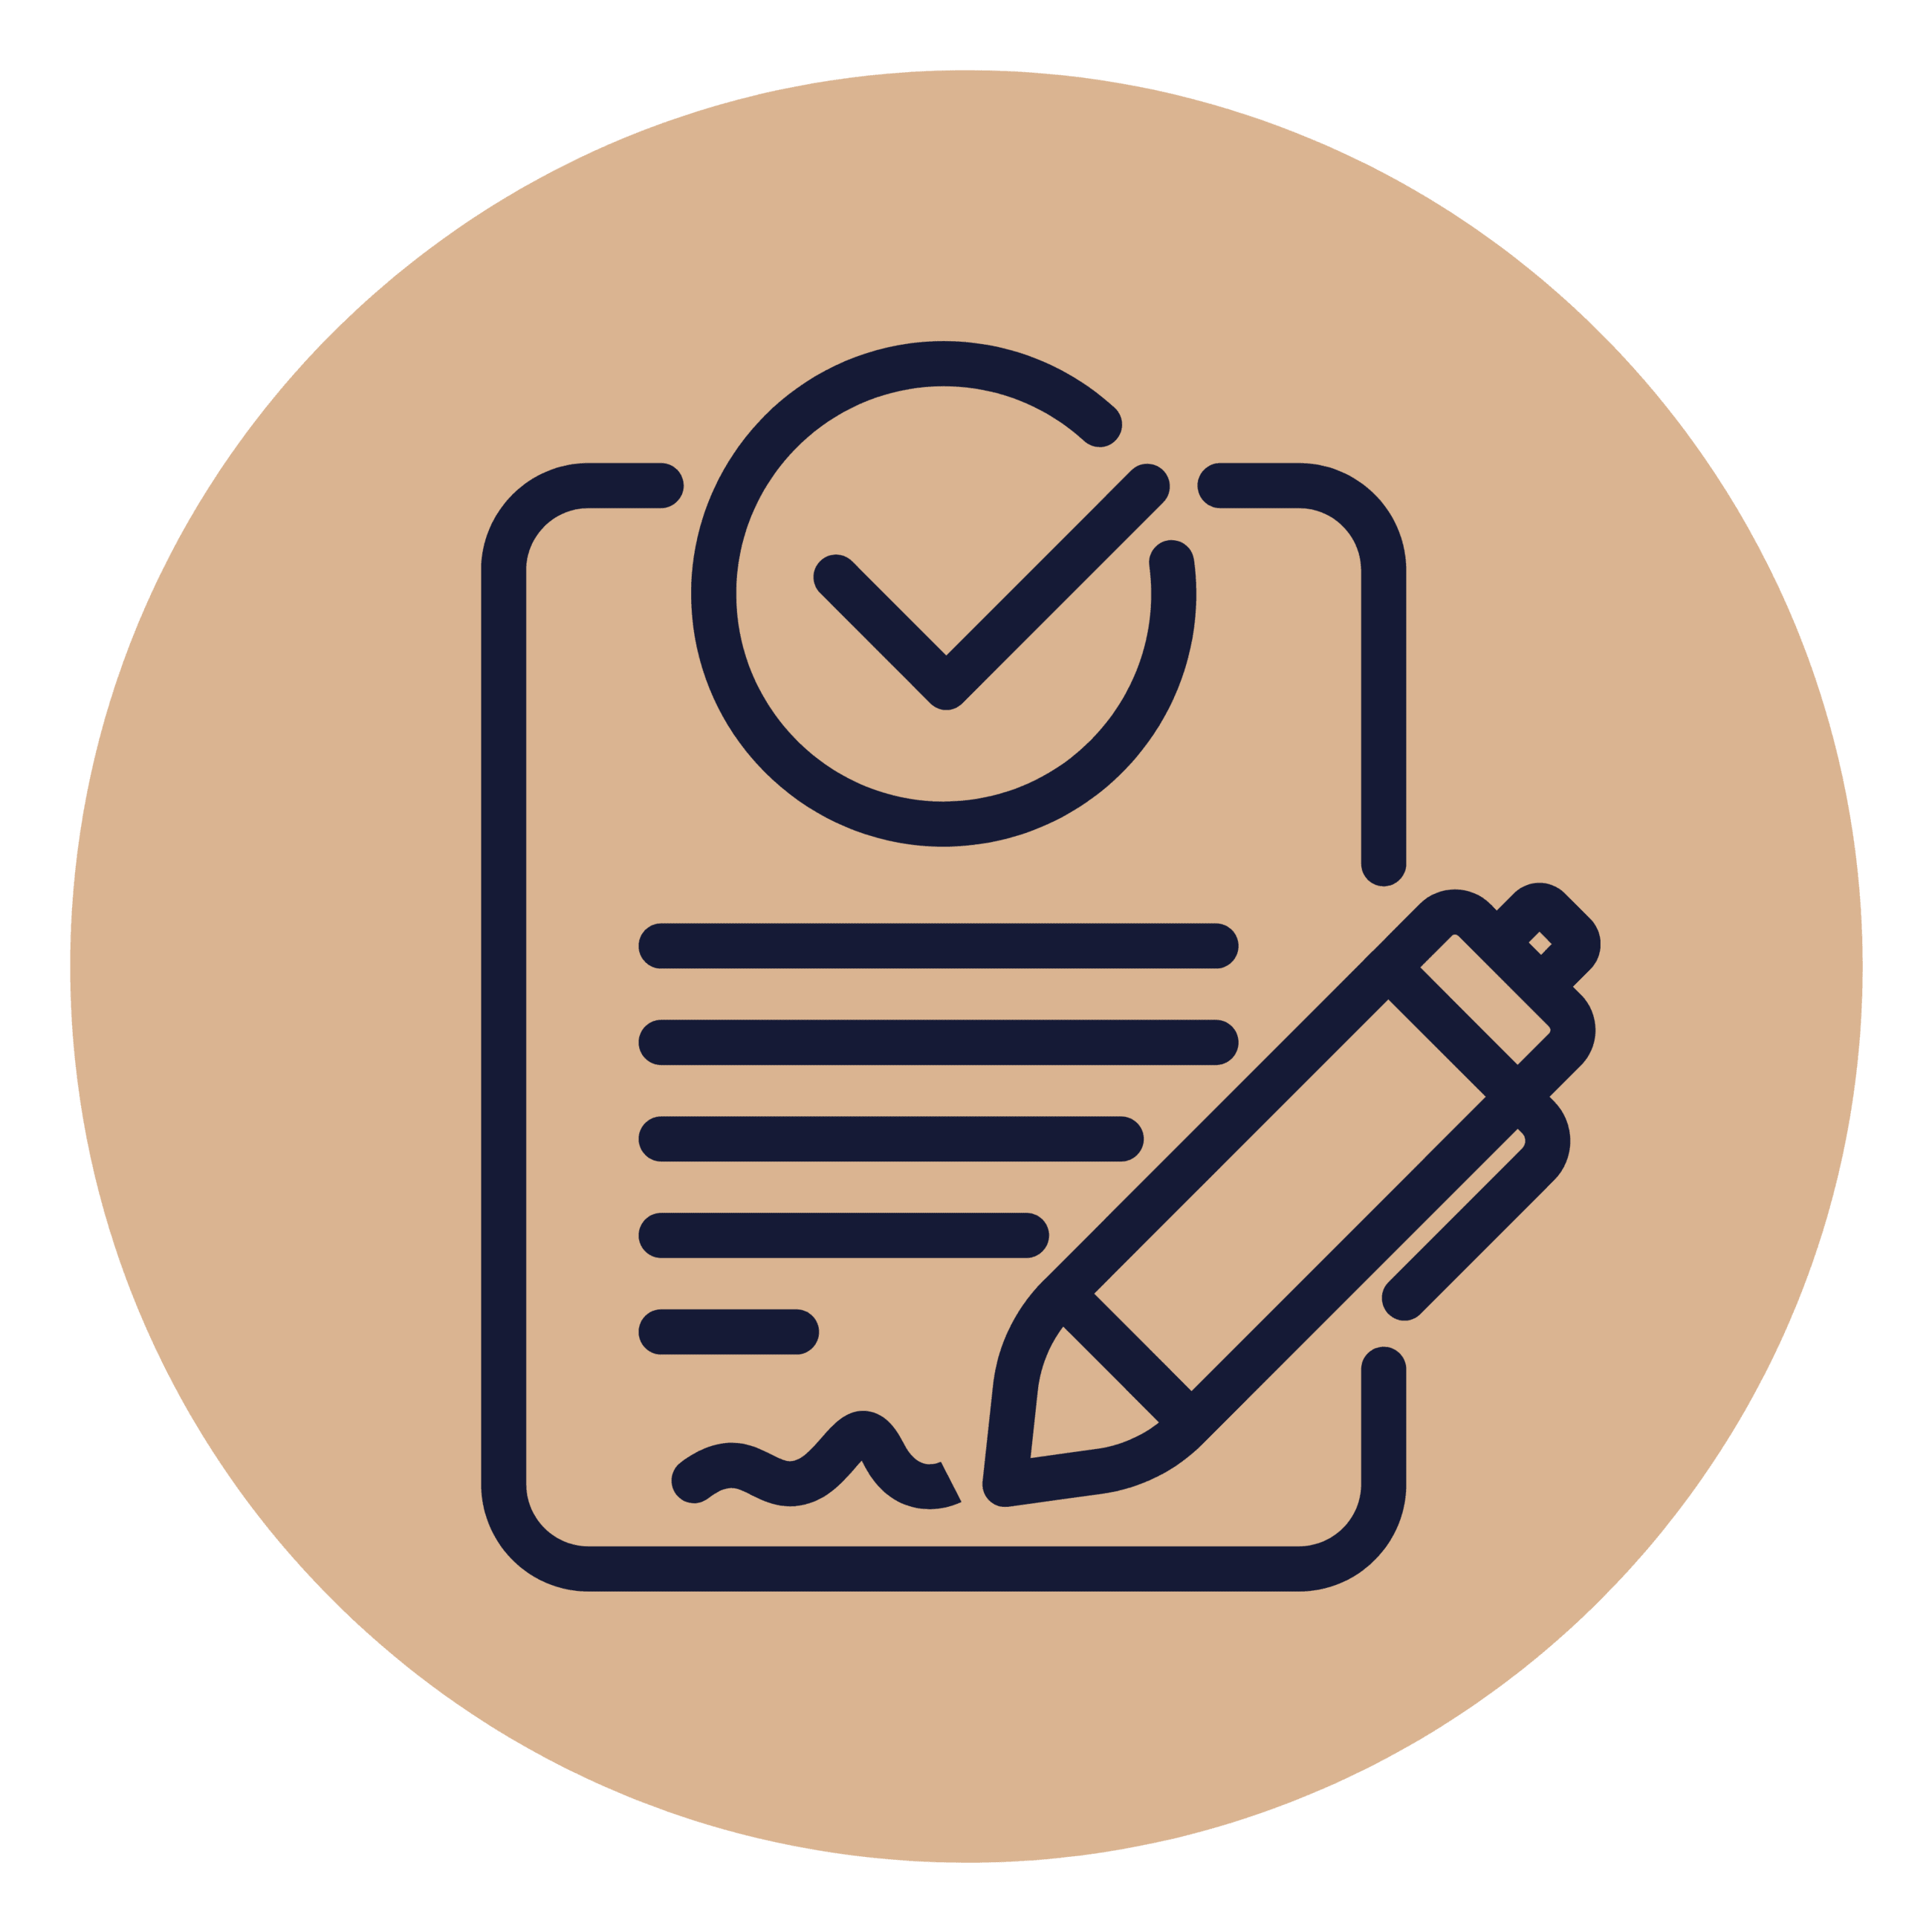 Request For Service Button